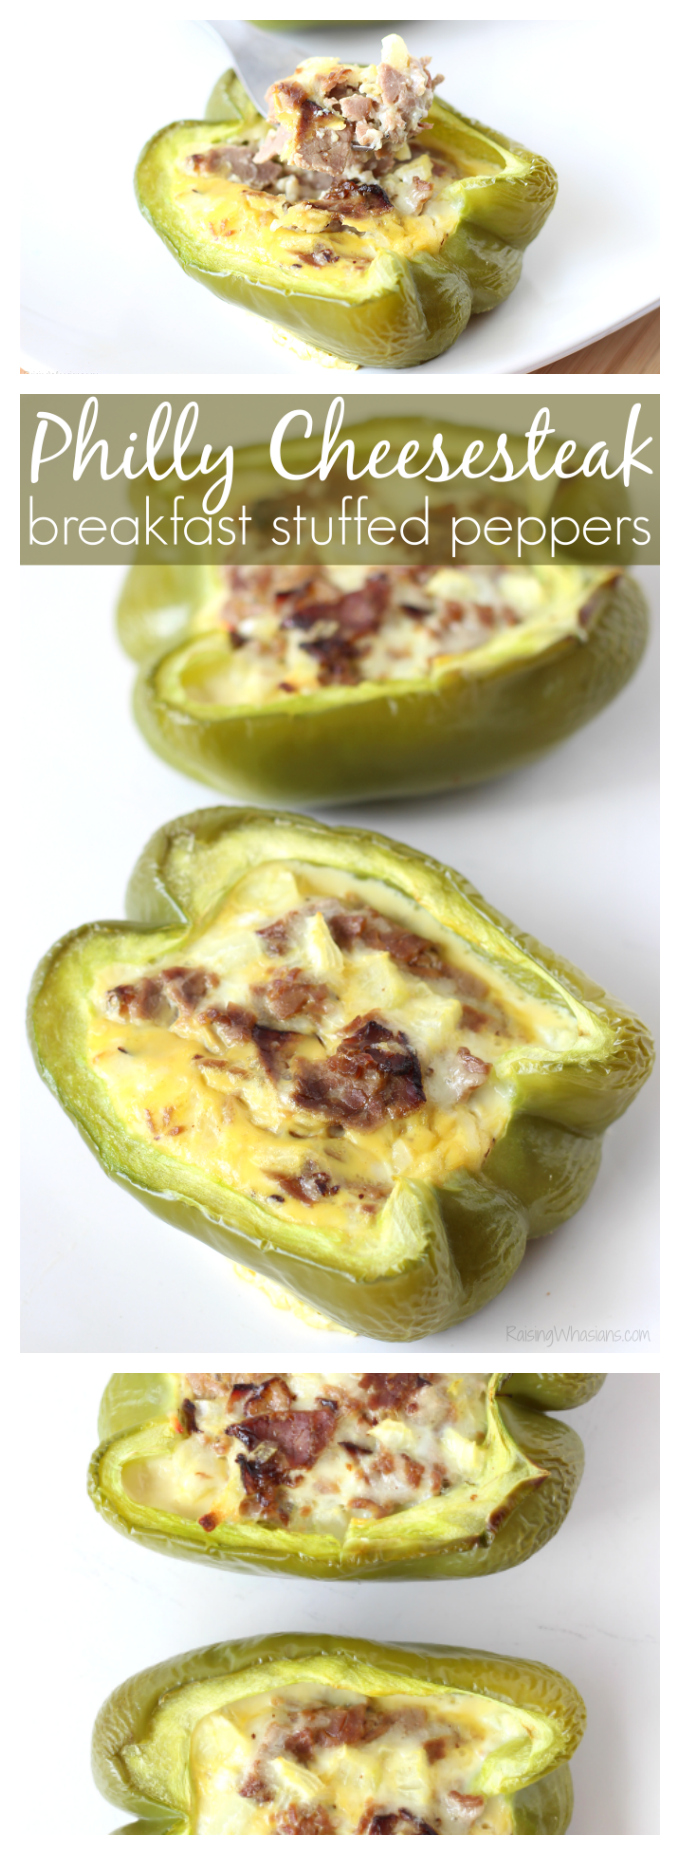 Philly cheesesteak stuffed peppers pinterest